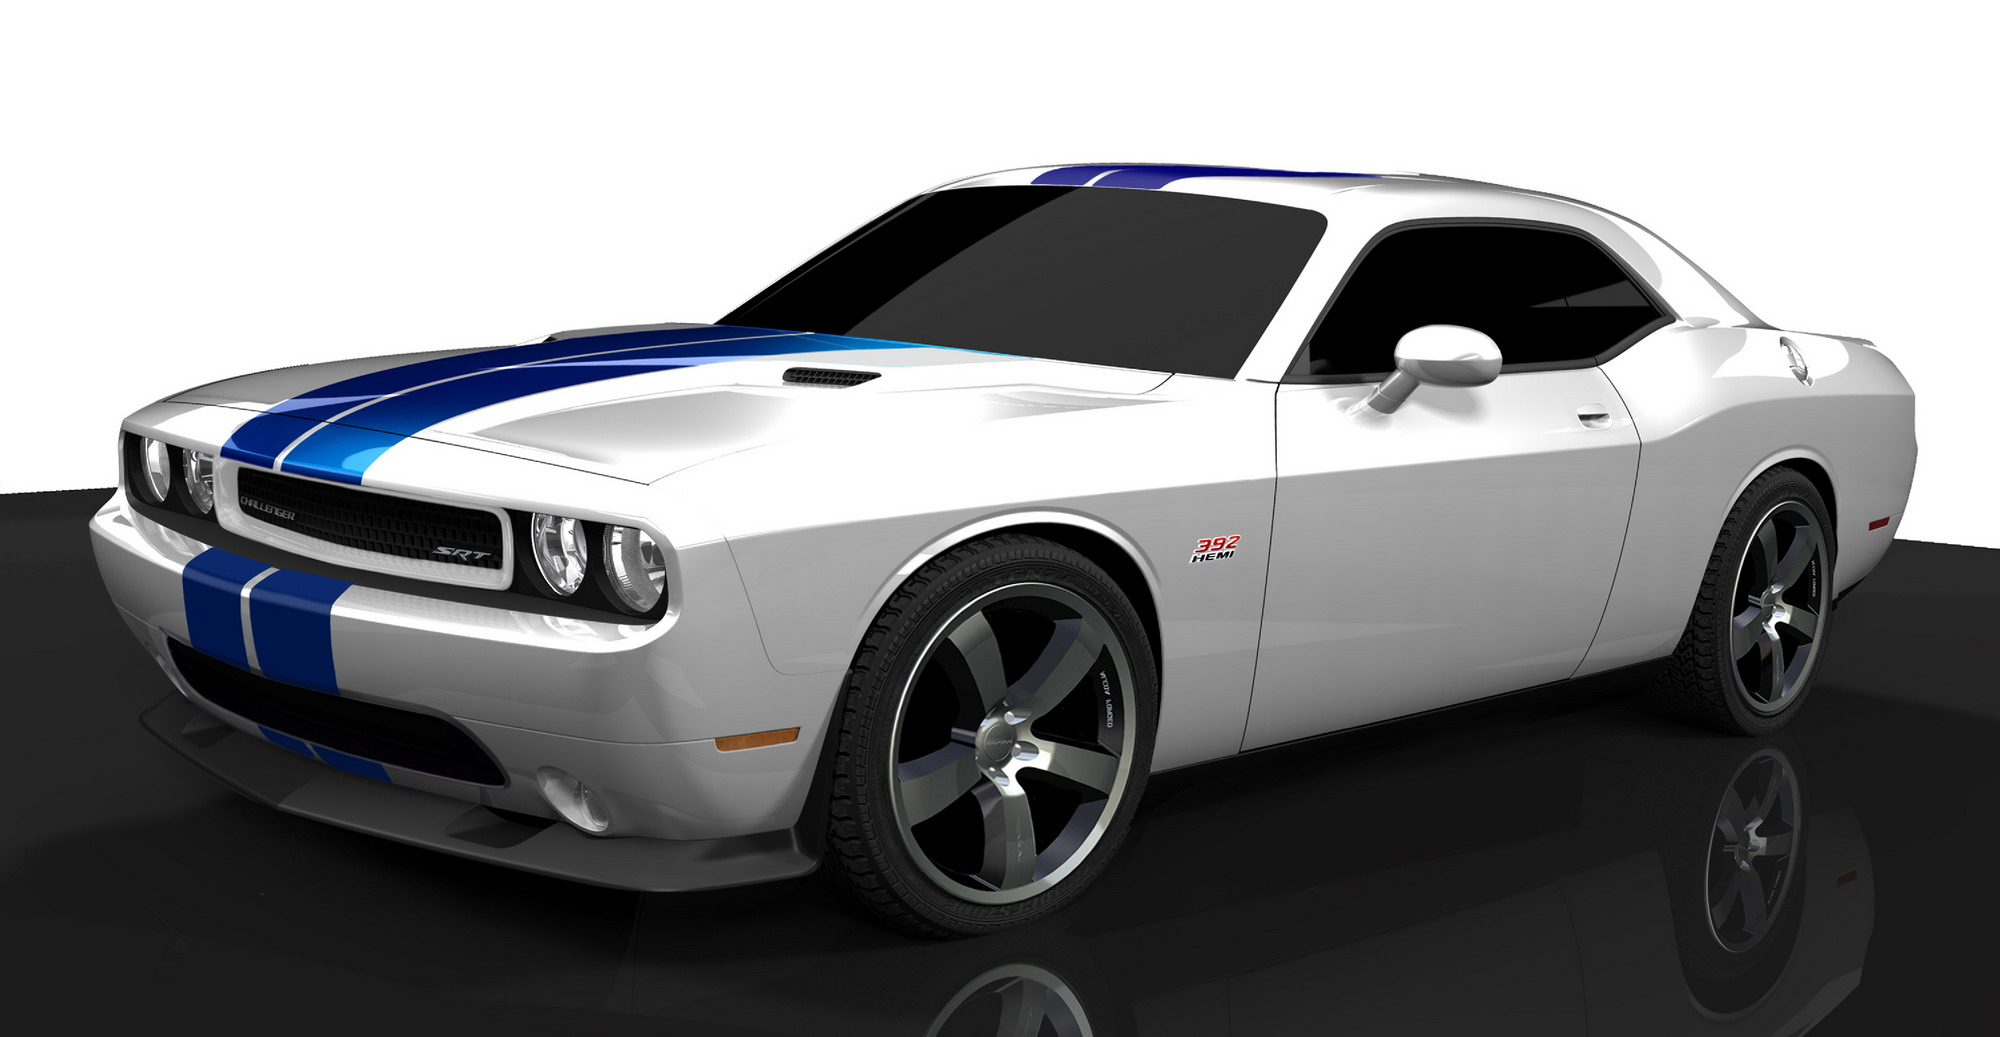 2011 dodge challenger srt8 392 review top speed. Black Bedroom Furniture Sets. Home Design Ideas